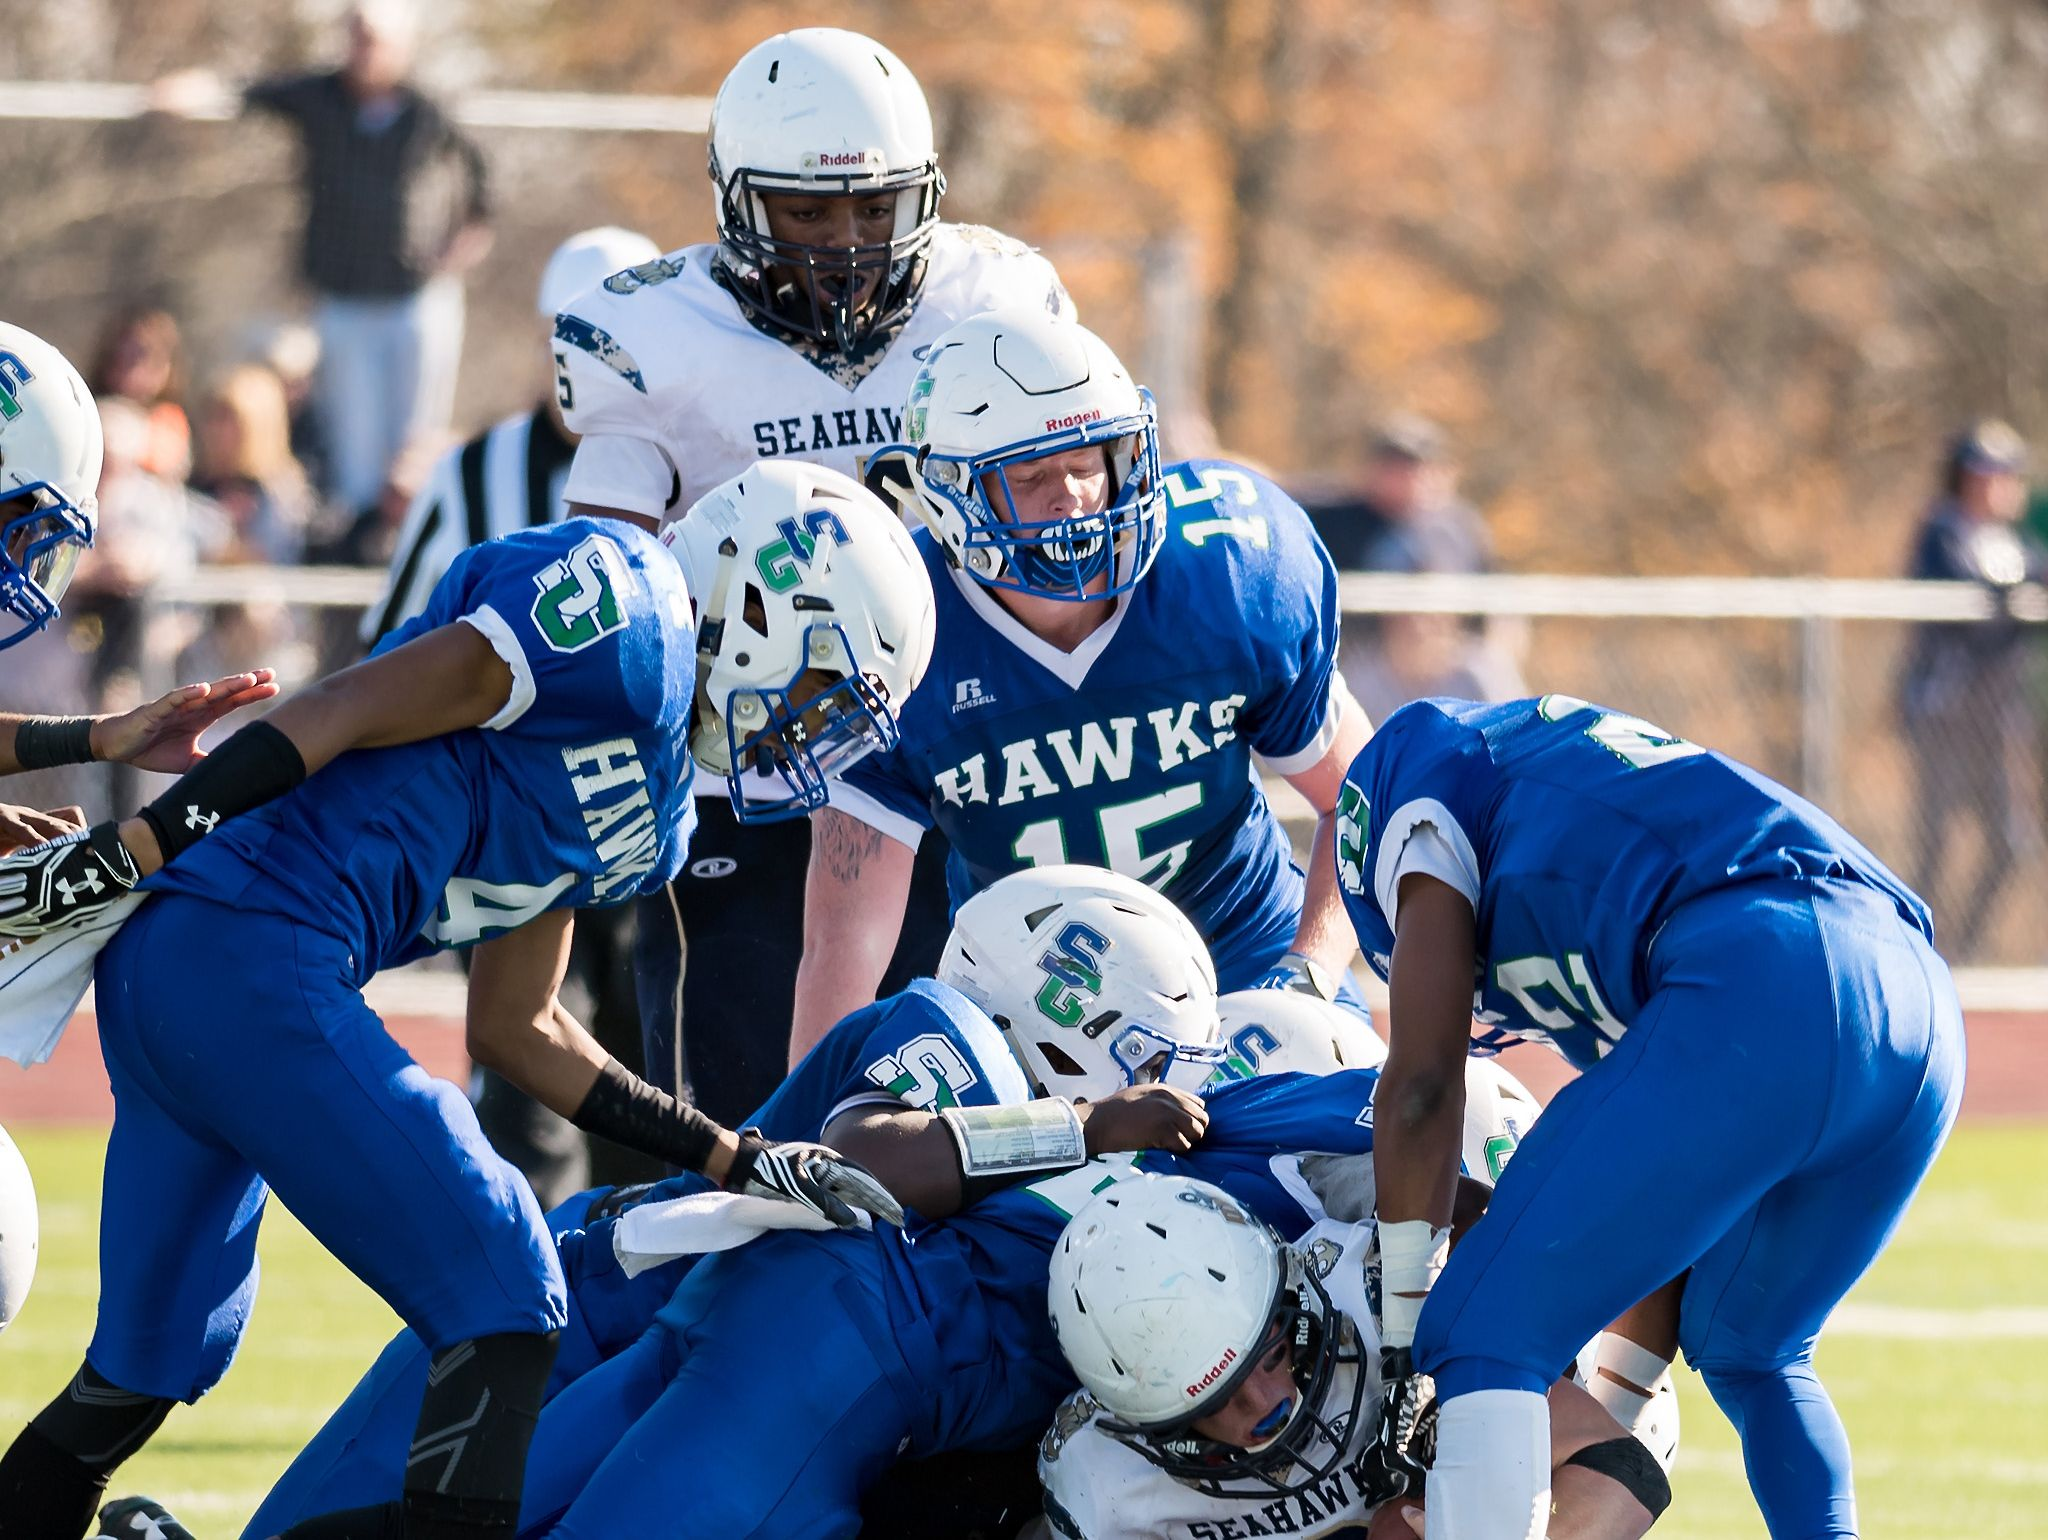 Jacob Hudson of DMA is tackled by a wall of St. Geroges defenders as DMA plays at St. Georges in the opening round of DIAA Division II playoffs.